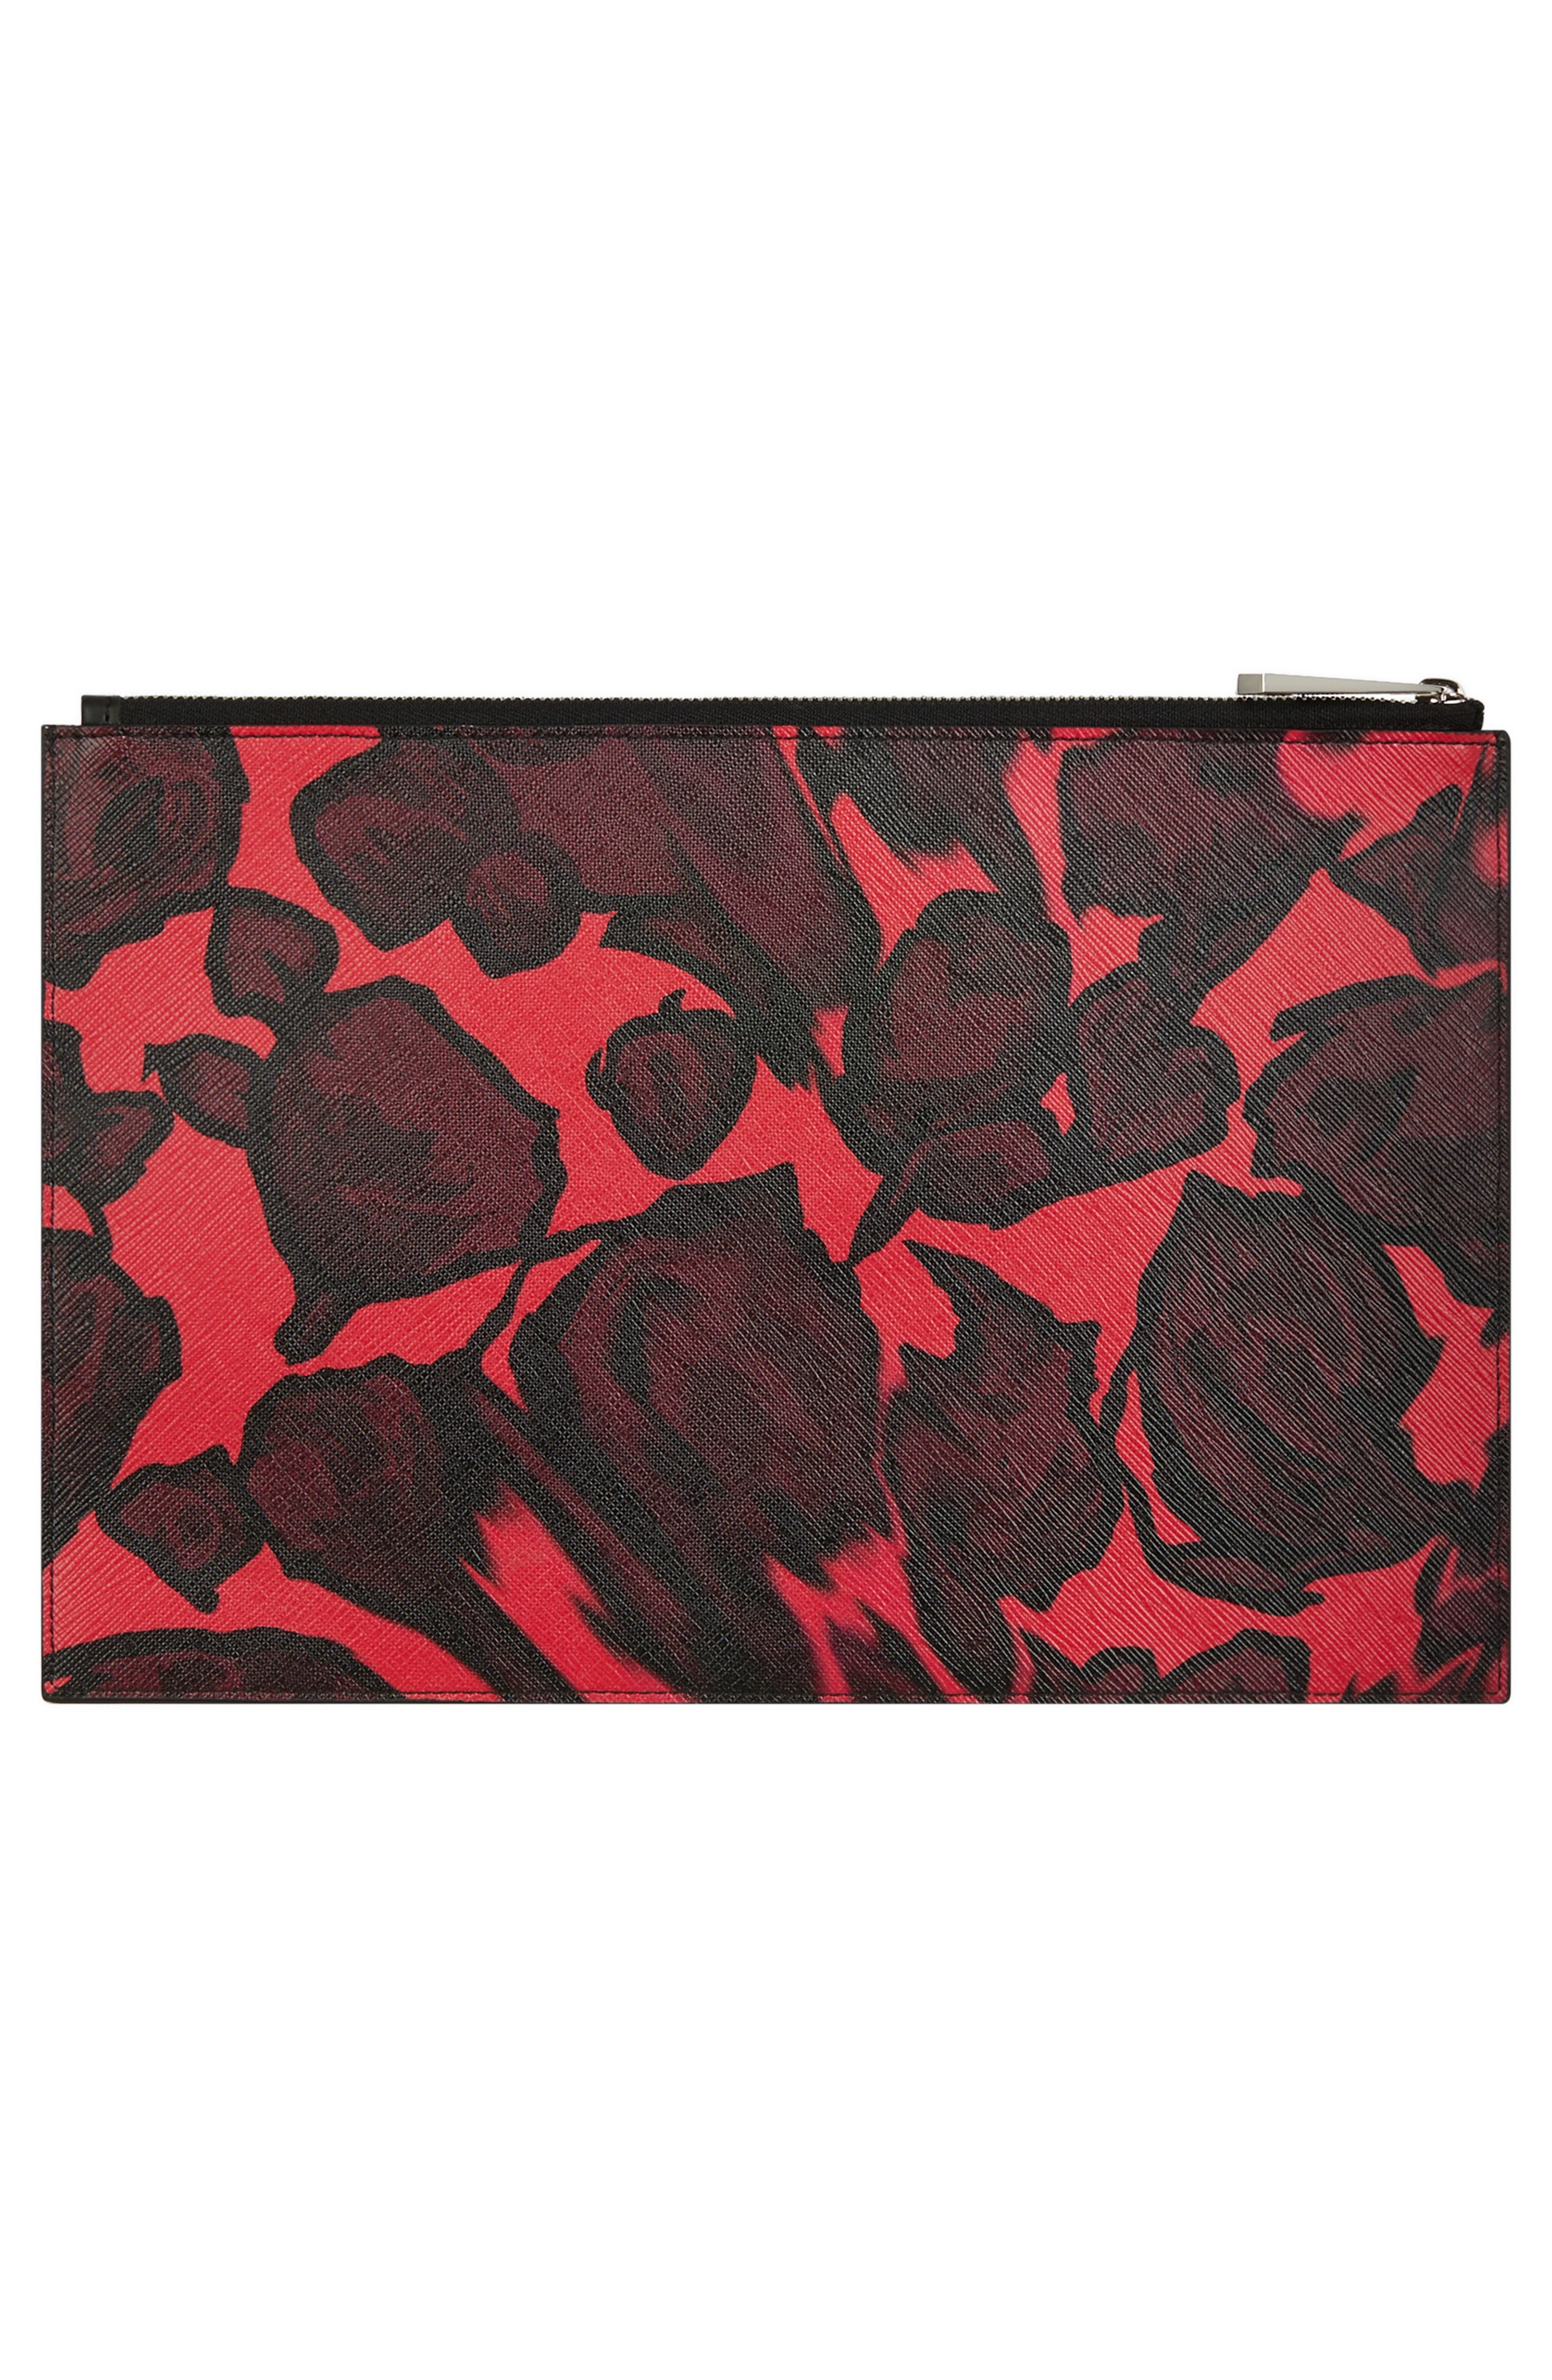 Iconic - Rose Print Pouch,                             Alternate thumbnail 2, color,                             600